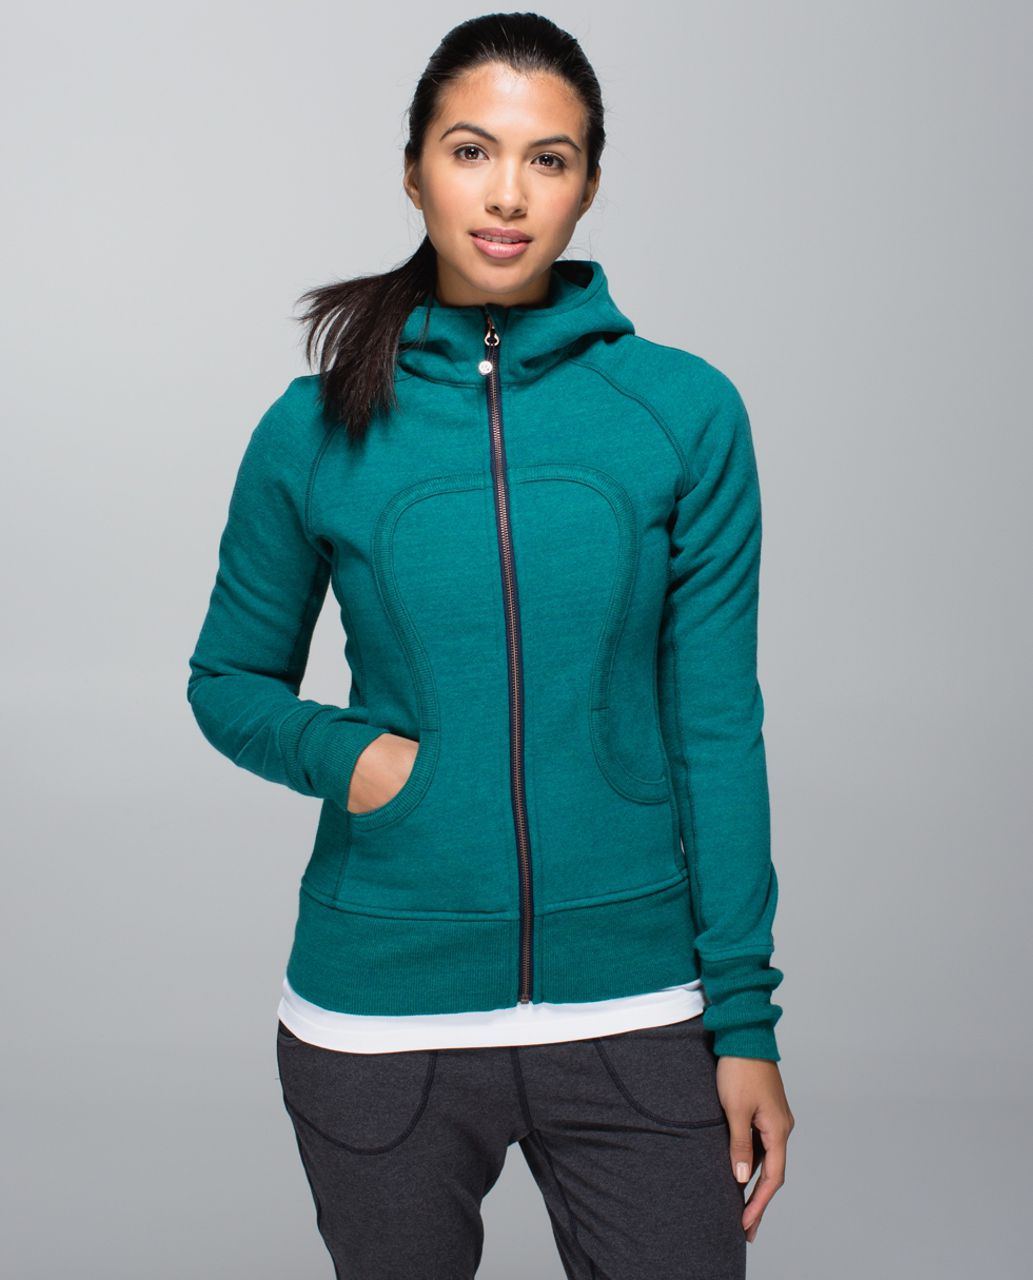 Lululemon Scuba Hoodie II - Heathered Green Teal / Inkwell